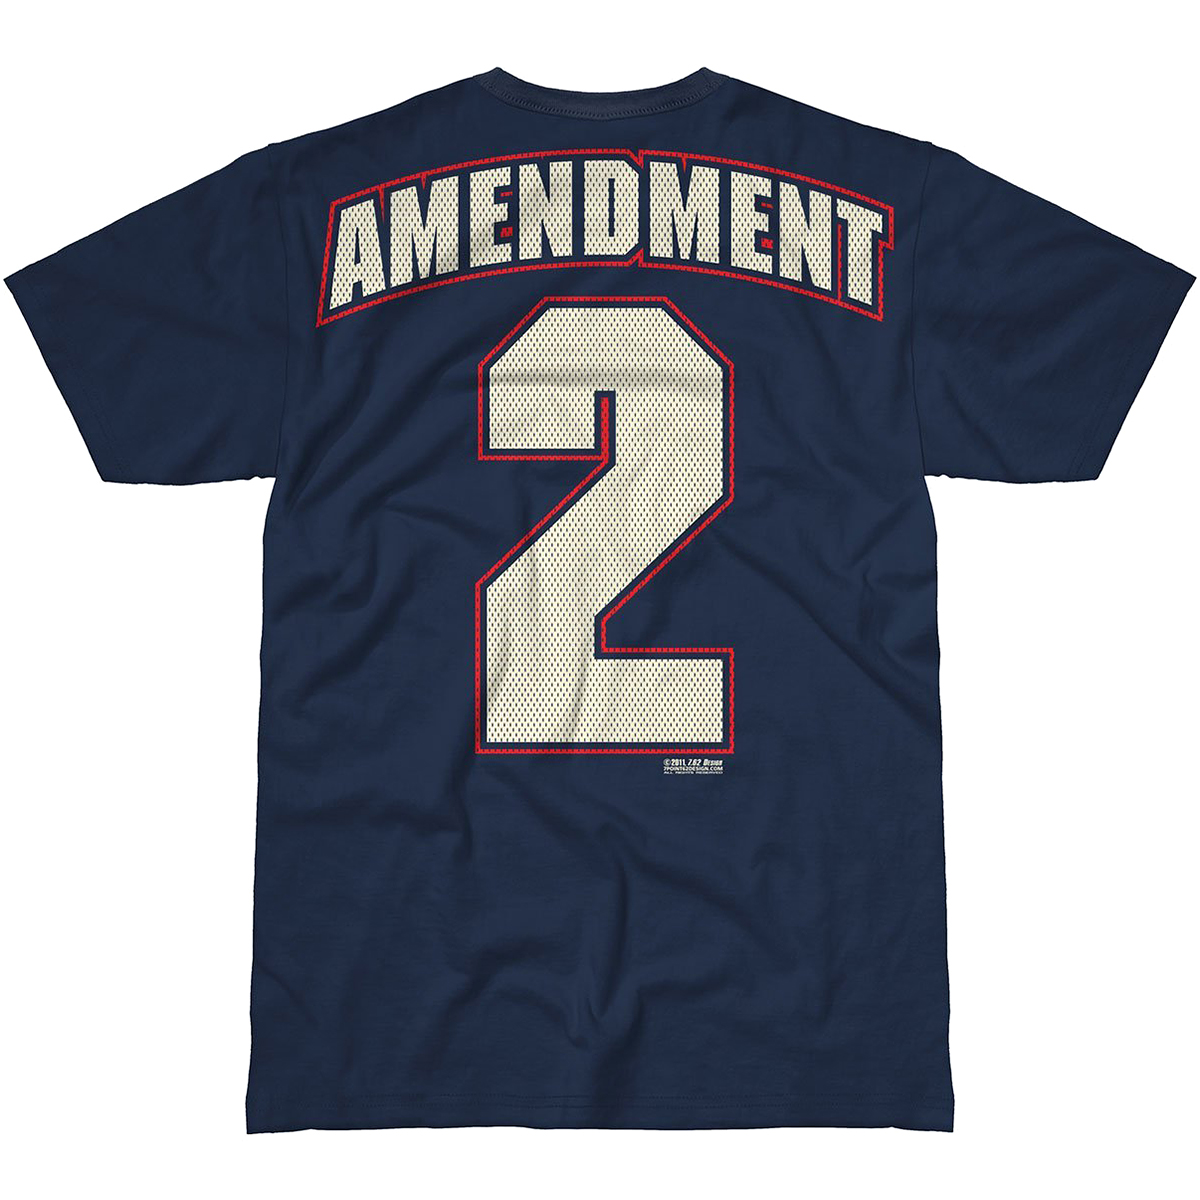 Design 2nd Amendment Freedom T Shirt Navy Blue